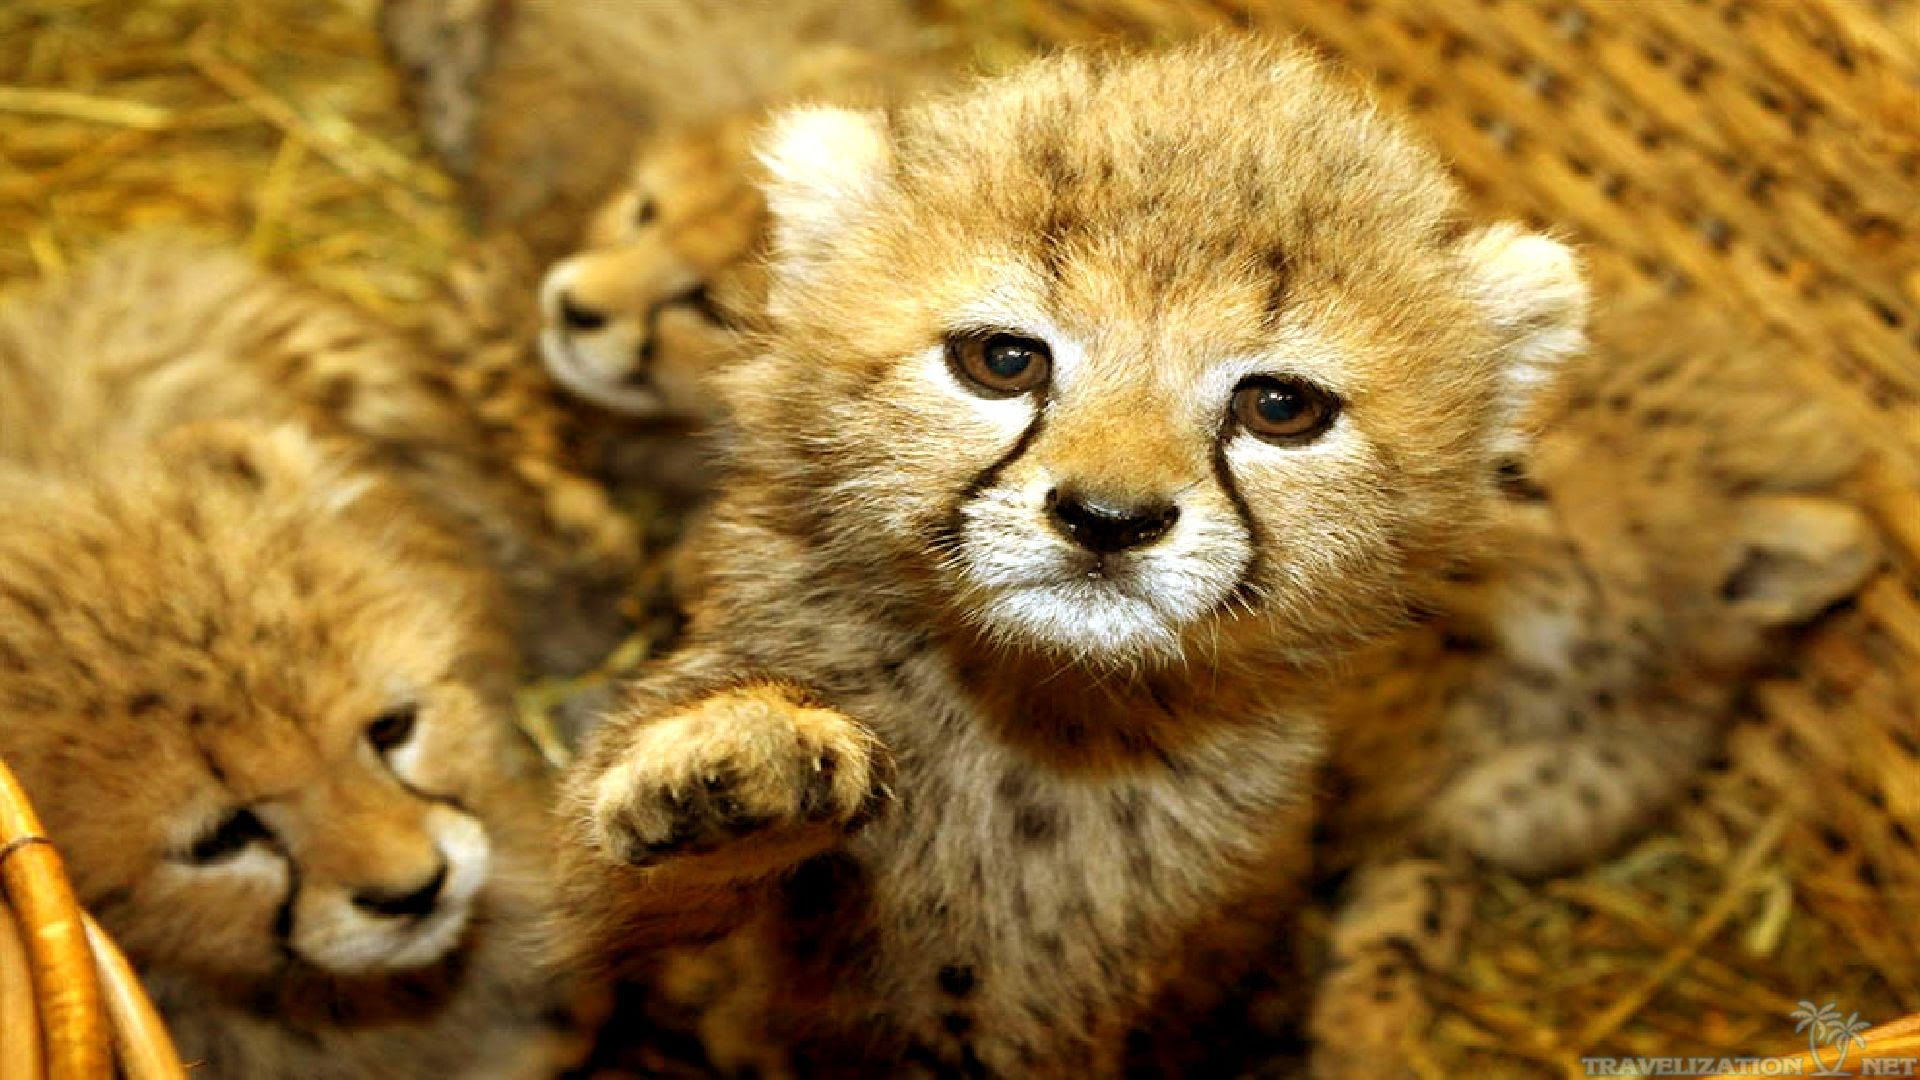 World Top 10 Wallpaper 53 Baby Animals Cute Sweet Tiget Wallpaper With 1920x1080